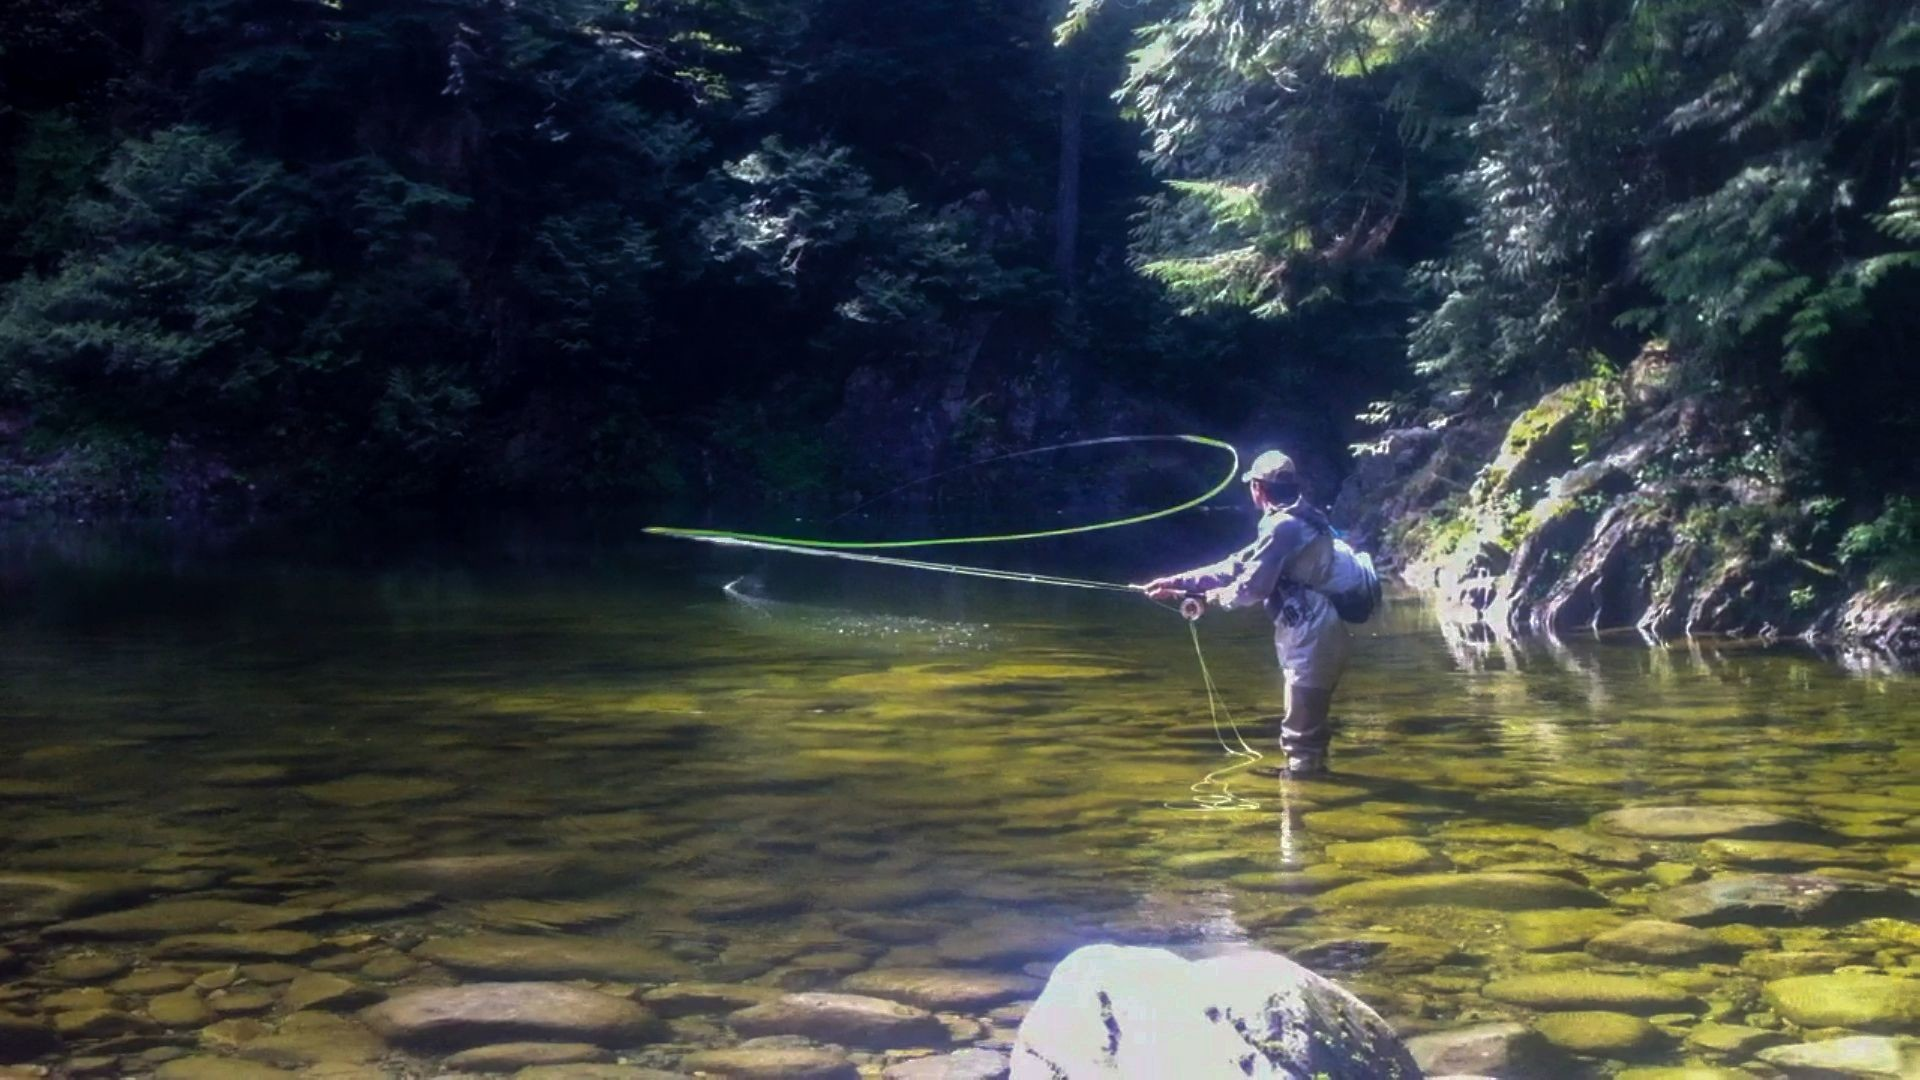 Wallpapers For > Fly Fishing River Wallpaper